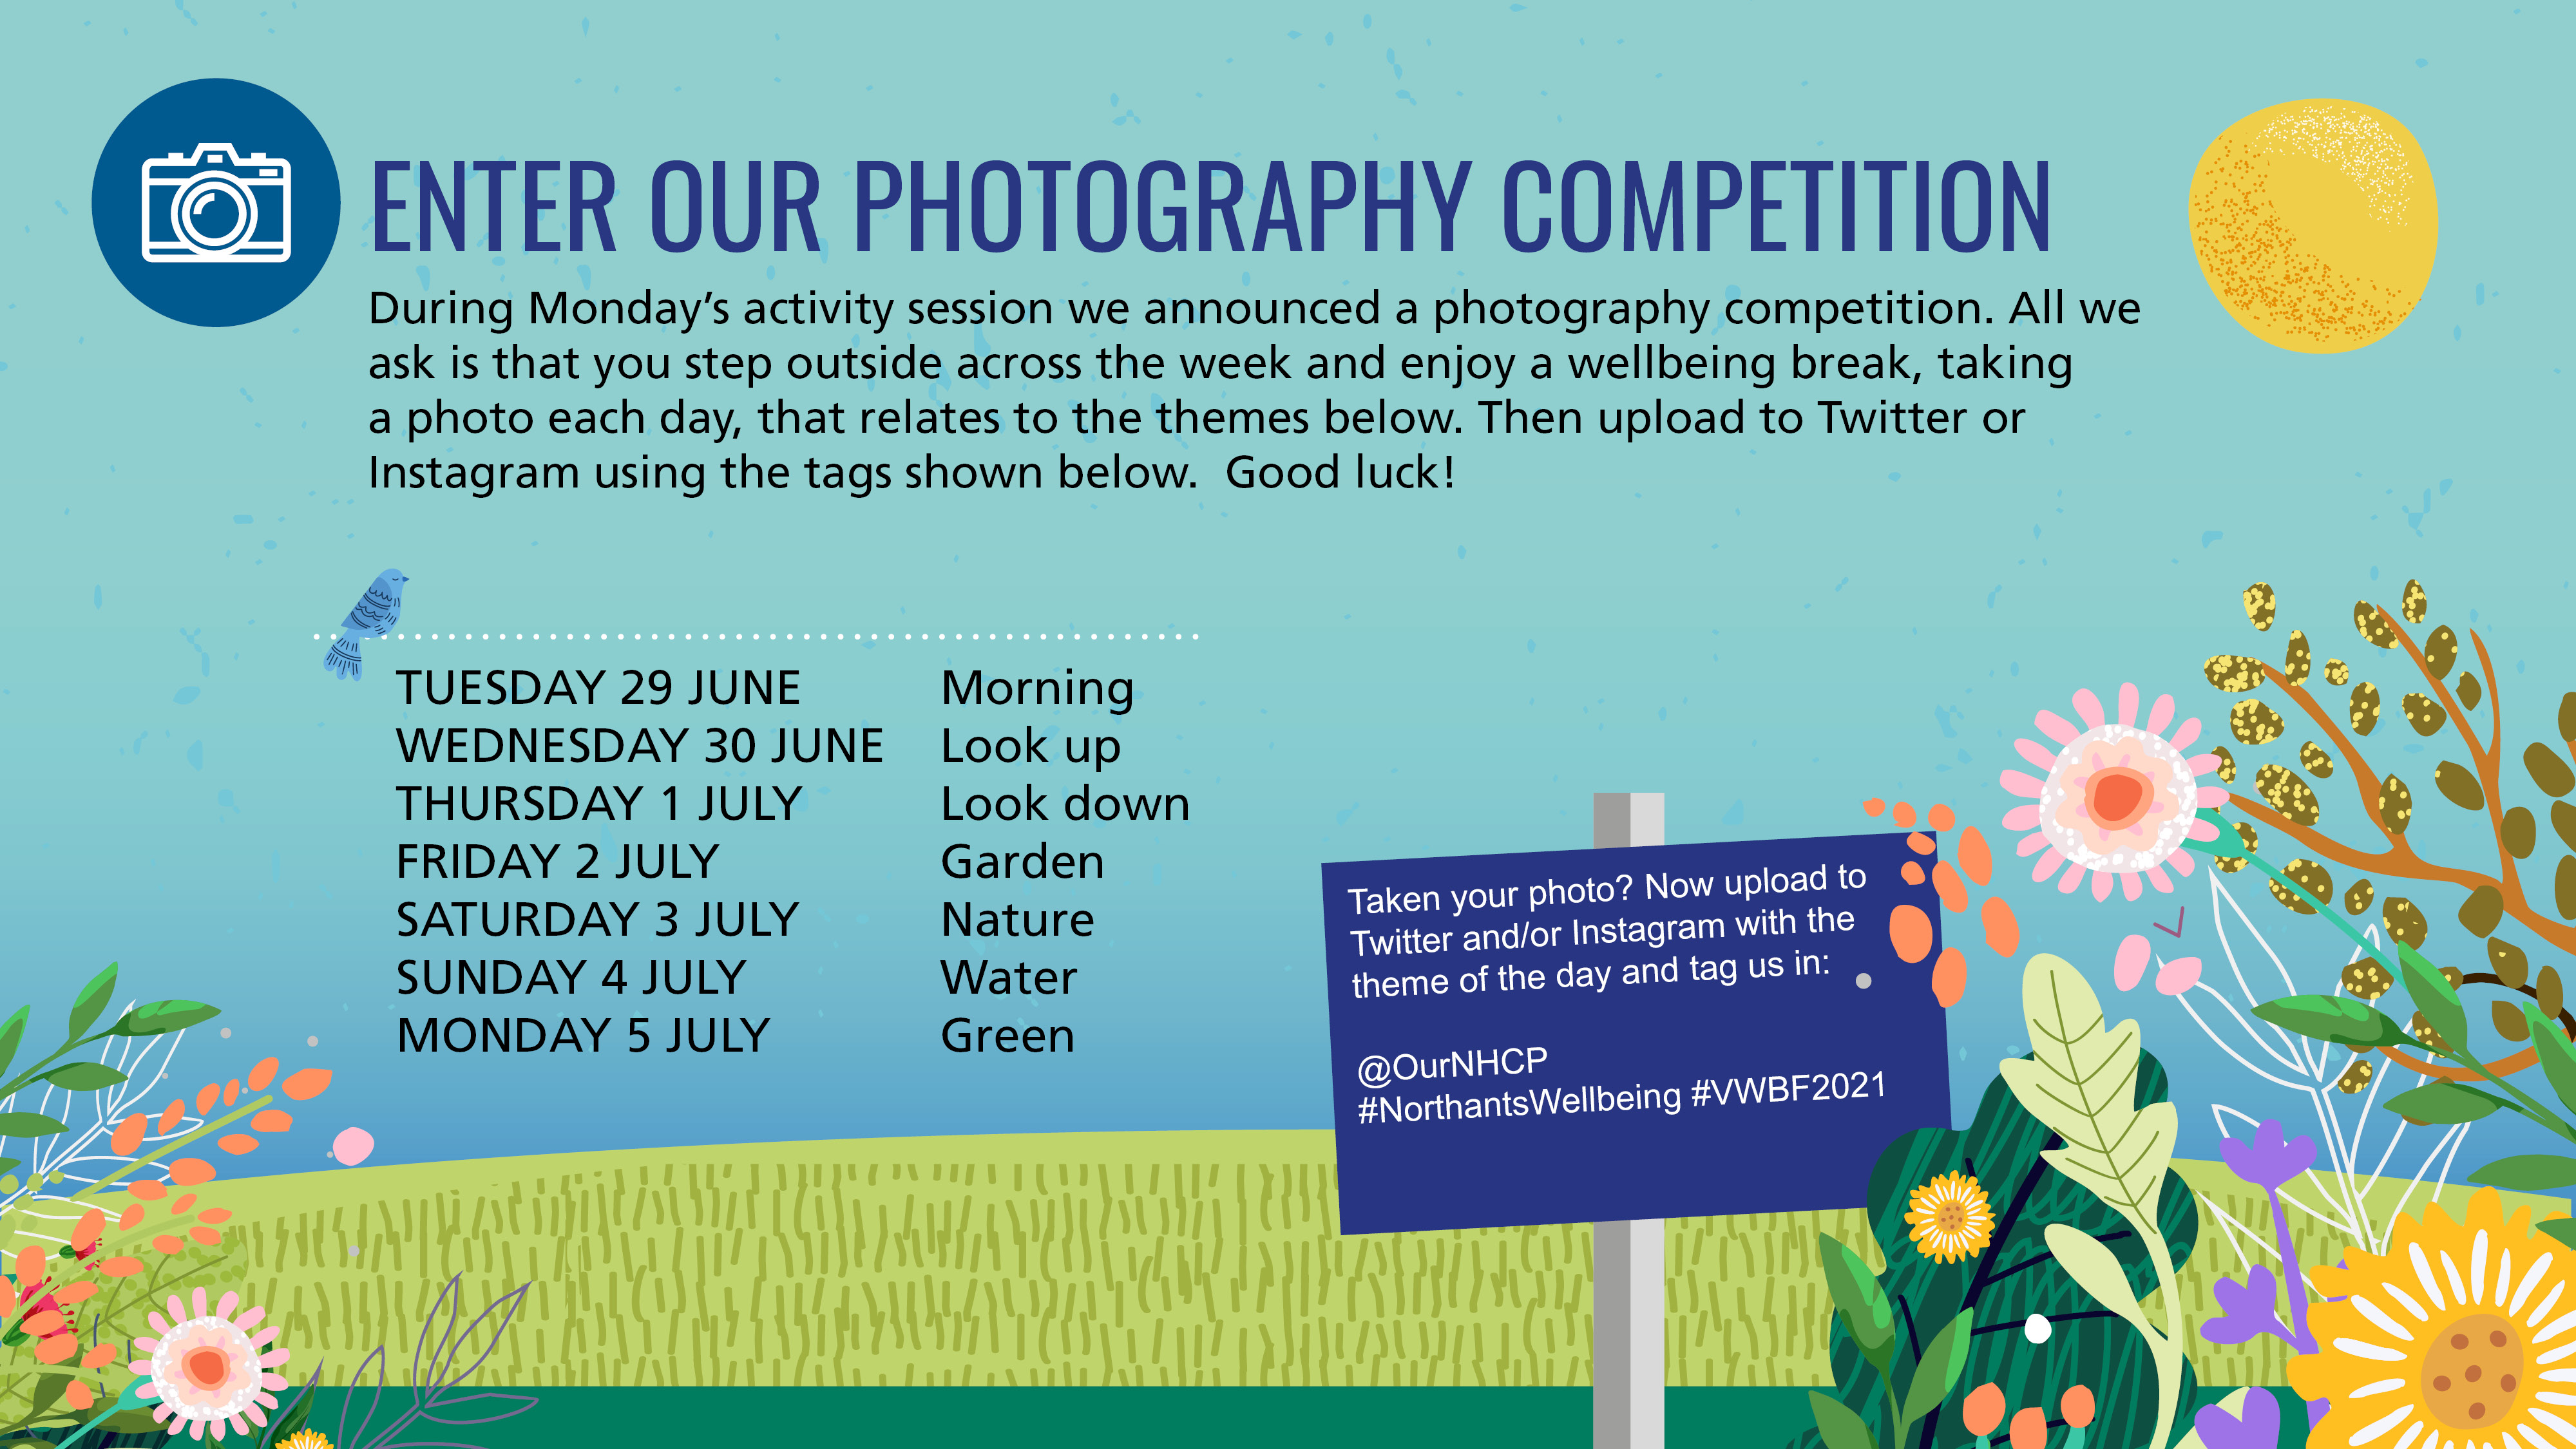 Enter our photo competition throughout the week